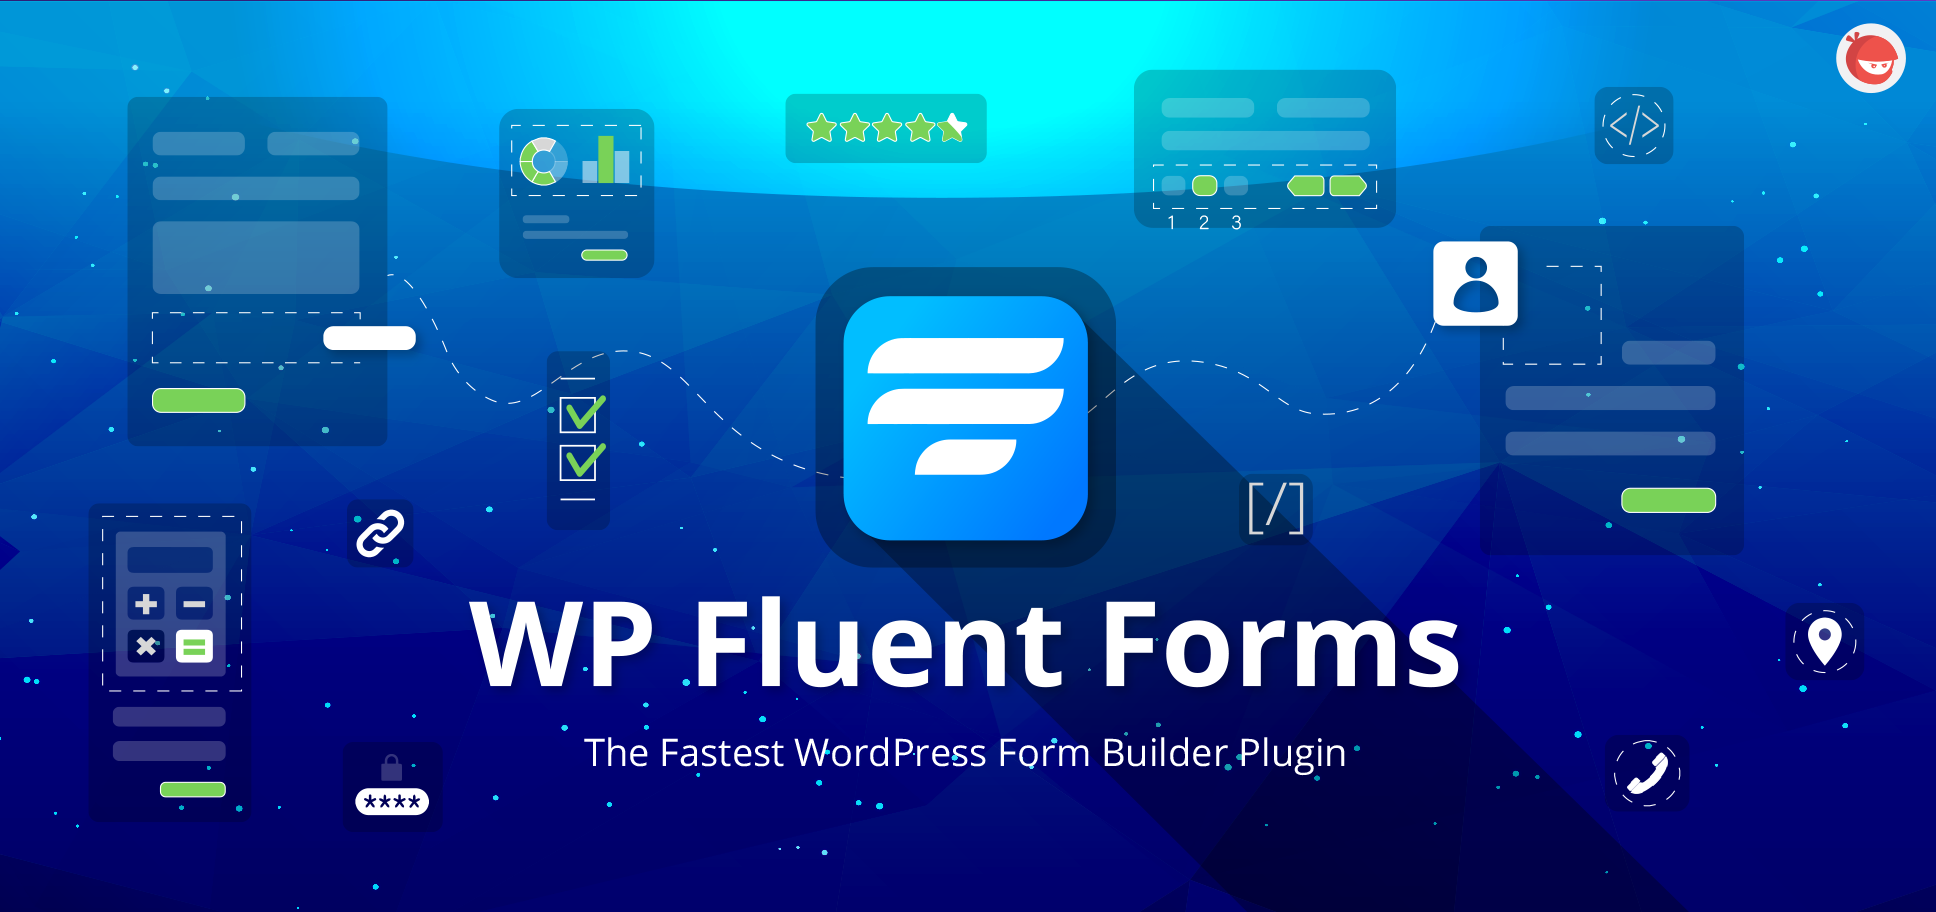 Fluent Forms Pro Add-On: The Fastest & Most Powerful WordPress Form Plugin